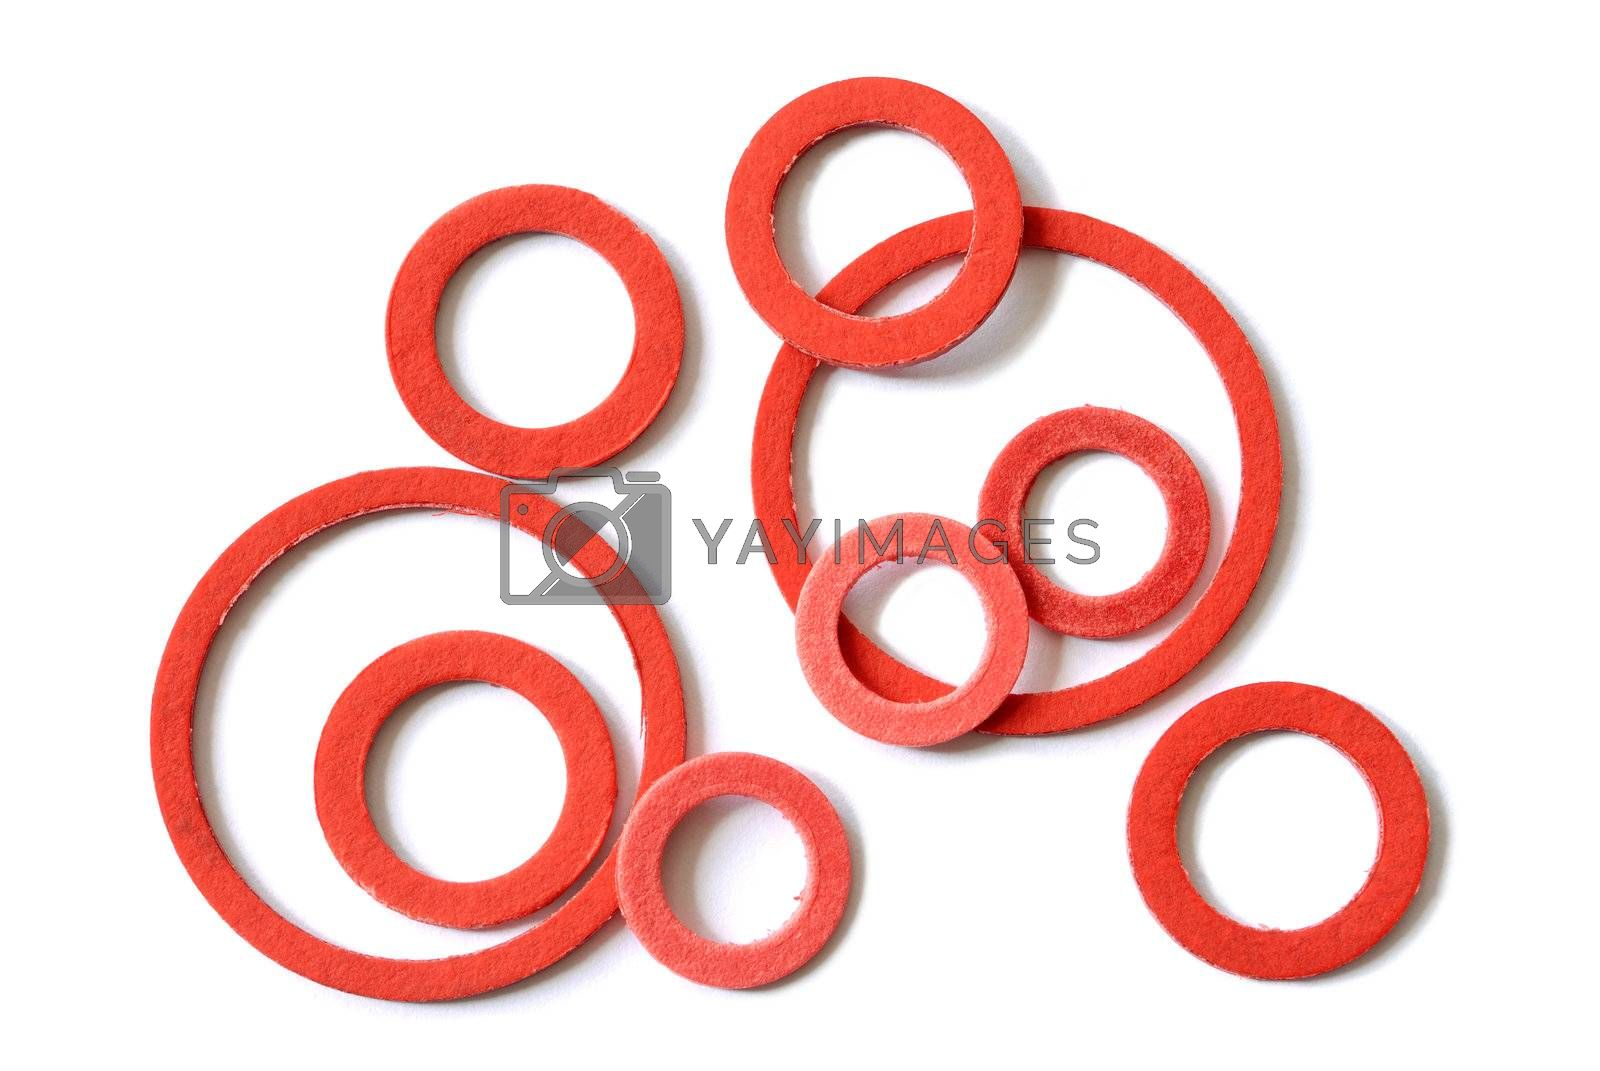 Macro of red gaskets isolated on white